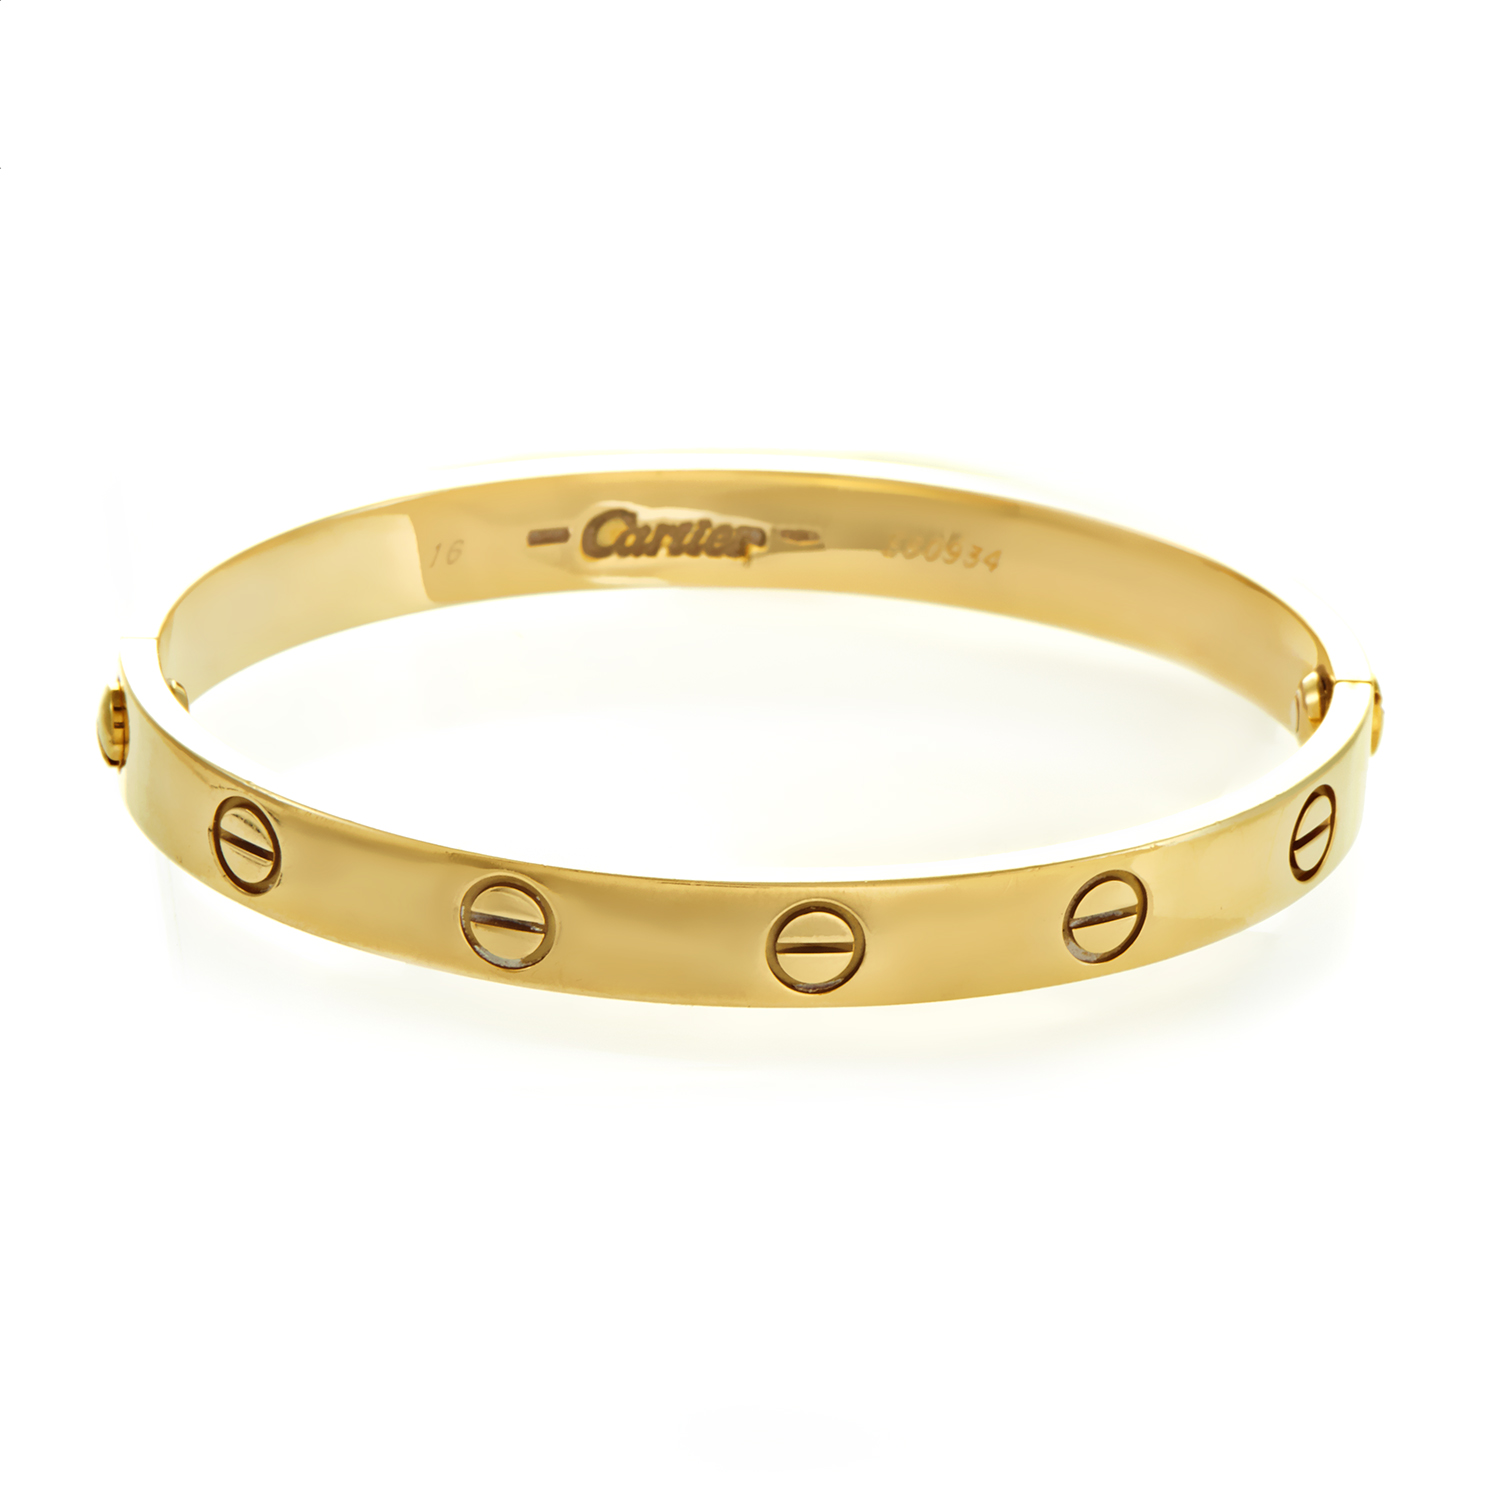 Cartier LOVE Women's 18K Yellow Gold Bracelet Size 16